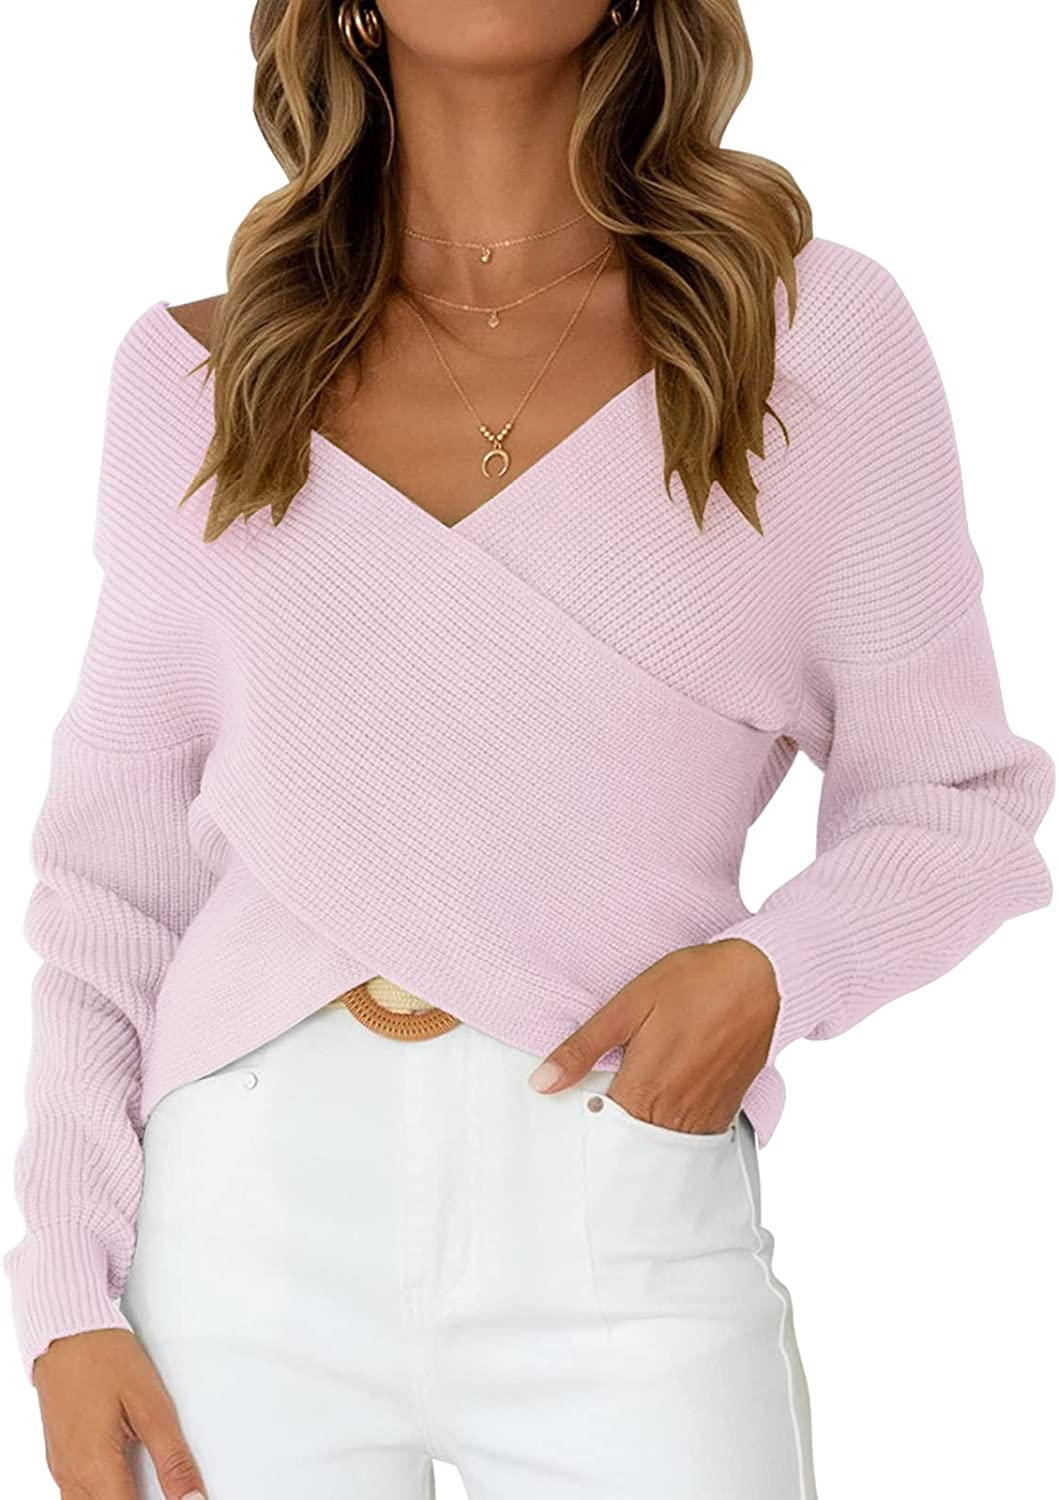 ZCSIA Women's Long Sleeve Wrap V Neck Cross Front Solid Color Casual Loose Knitted Pullover Sweater